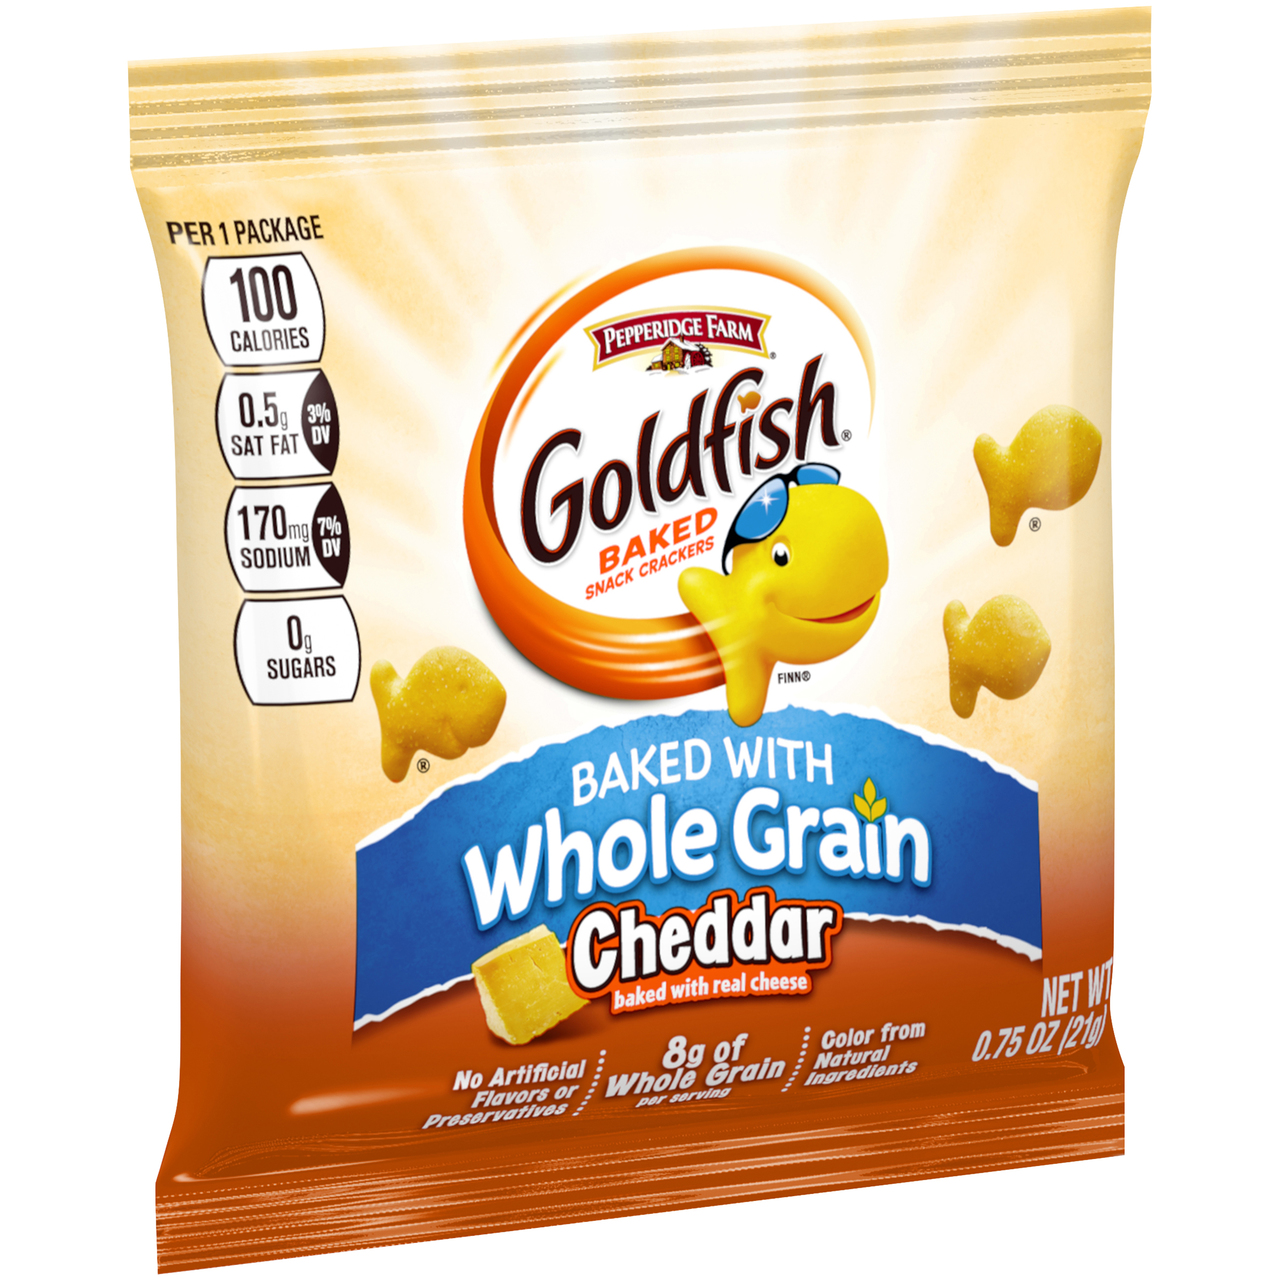 300 PACKS : Pepperidge Farm Whole Grain Cheddar Goldfish - 0.75 oz. bag